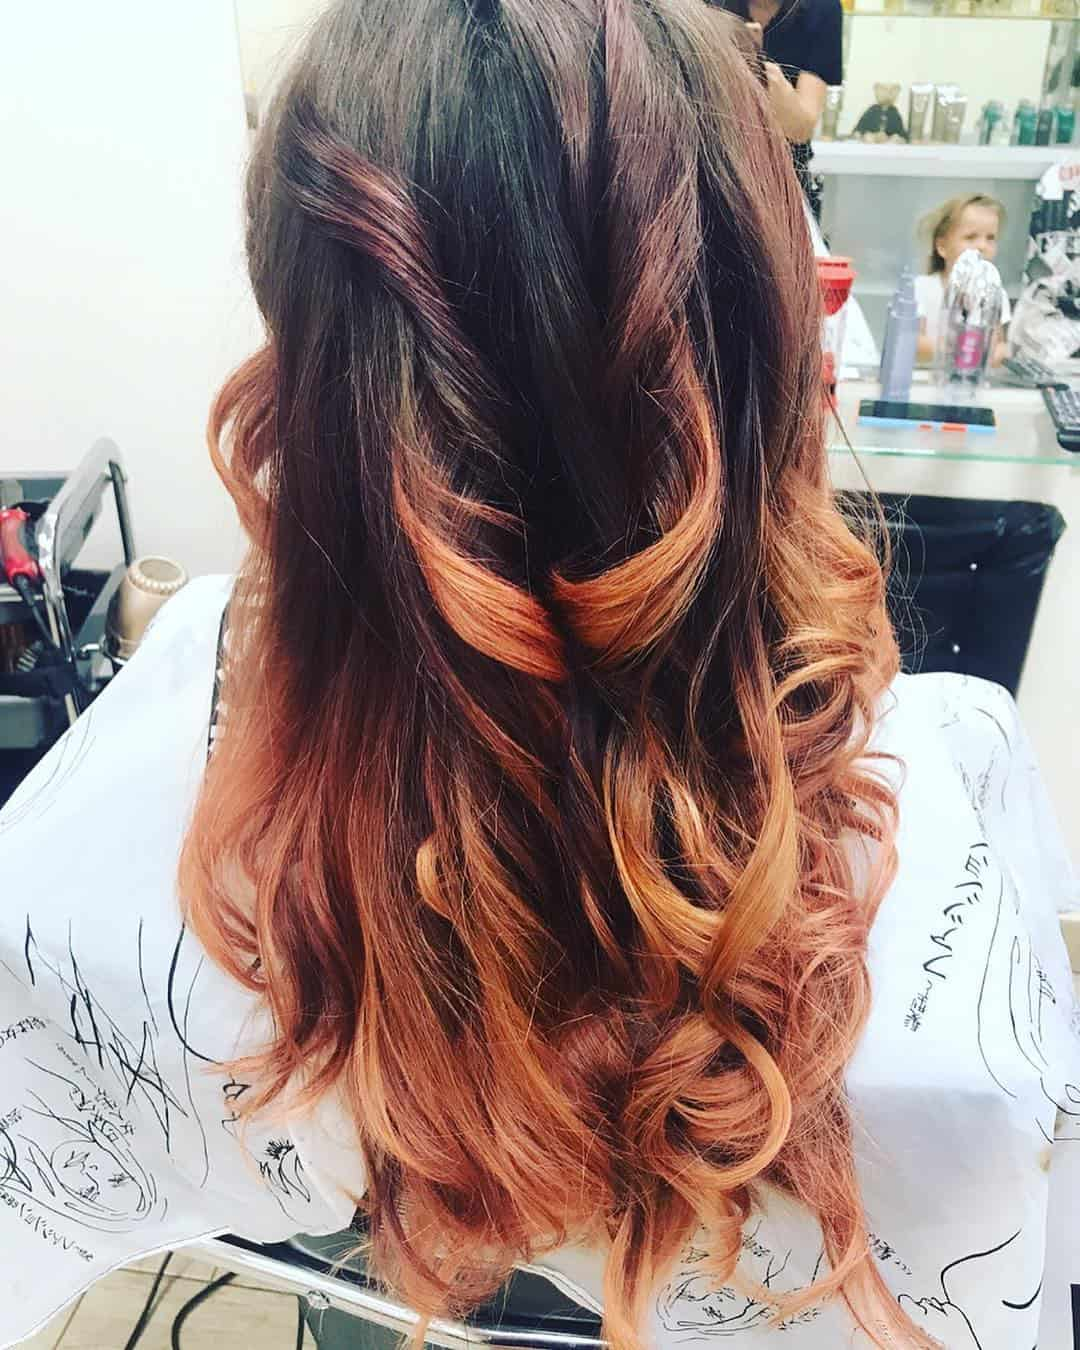 Top 15 Stunning Hair Trends 2020 For Stylish Women (45